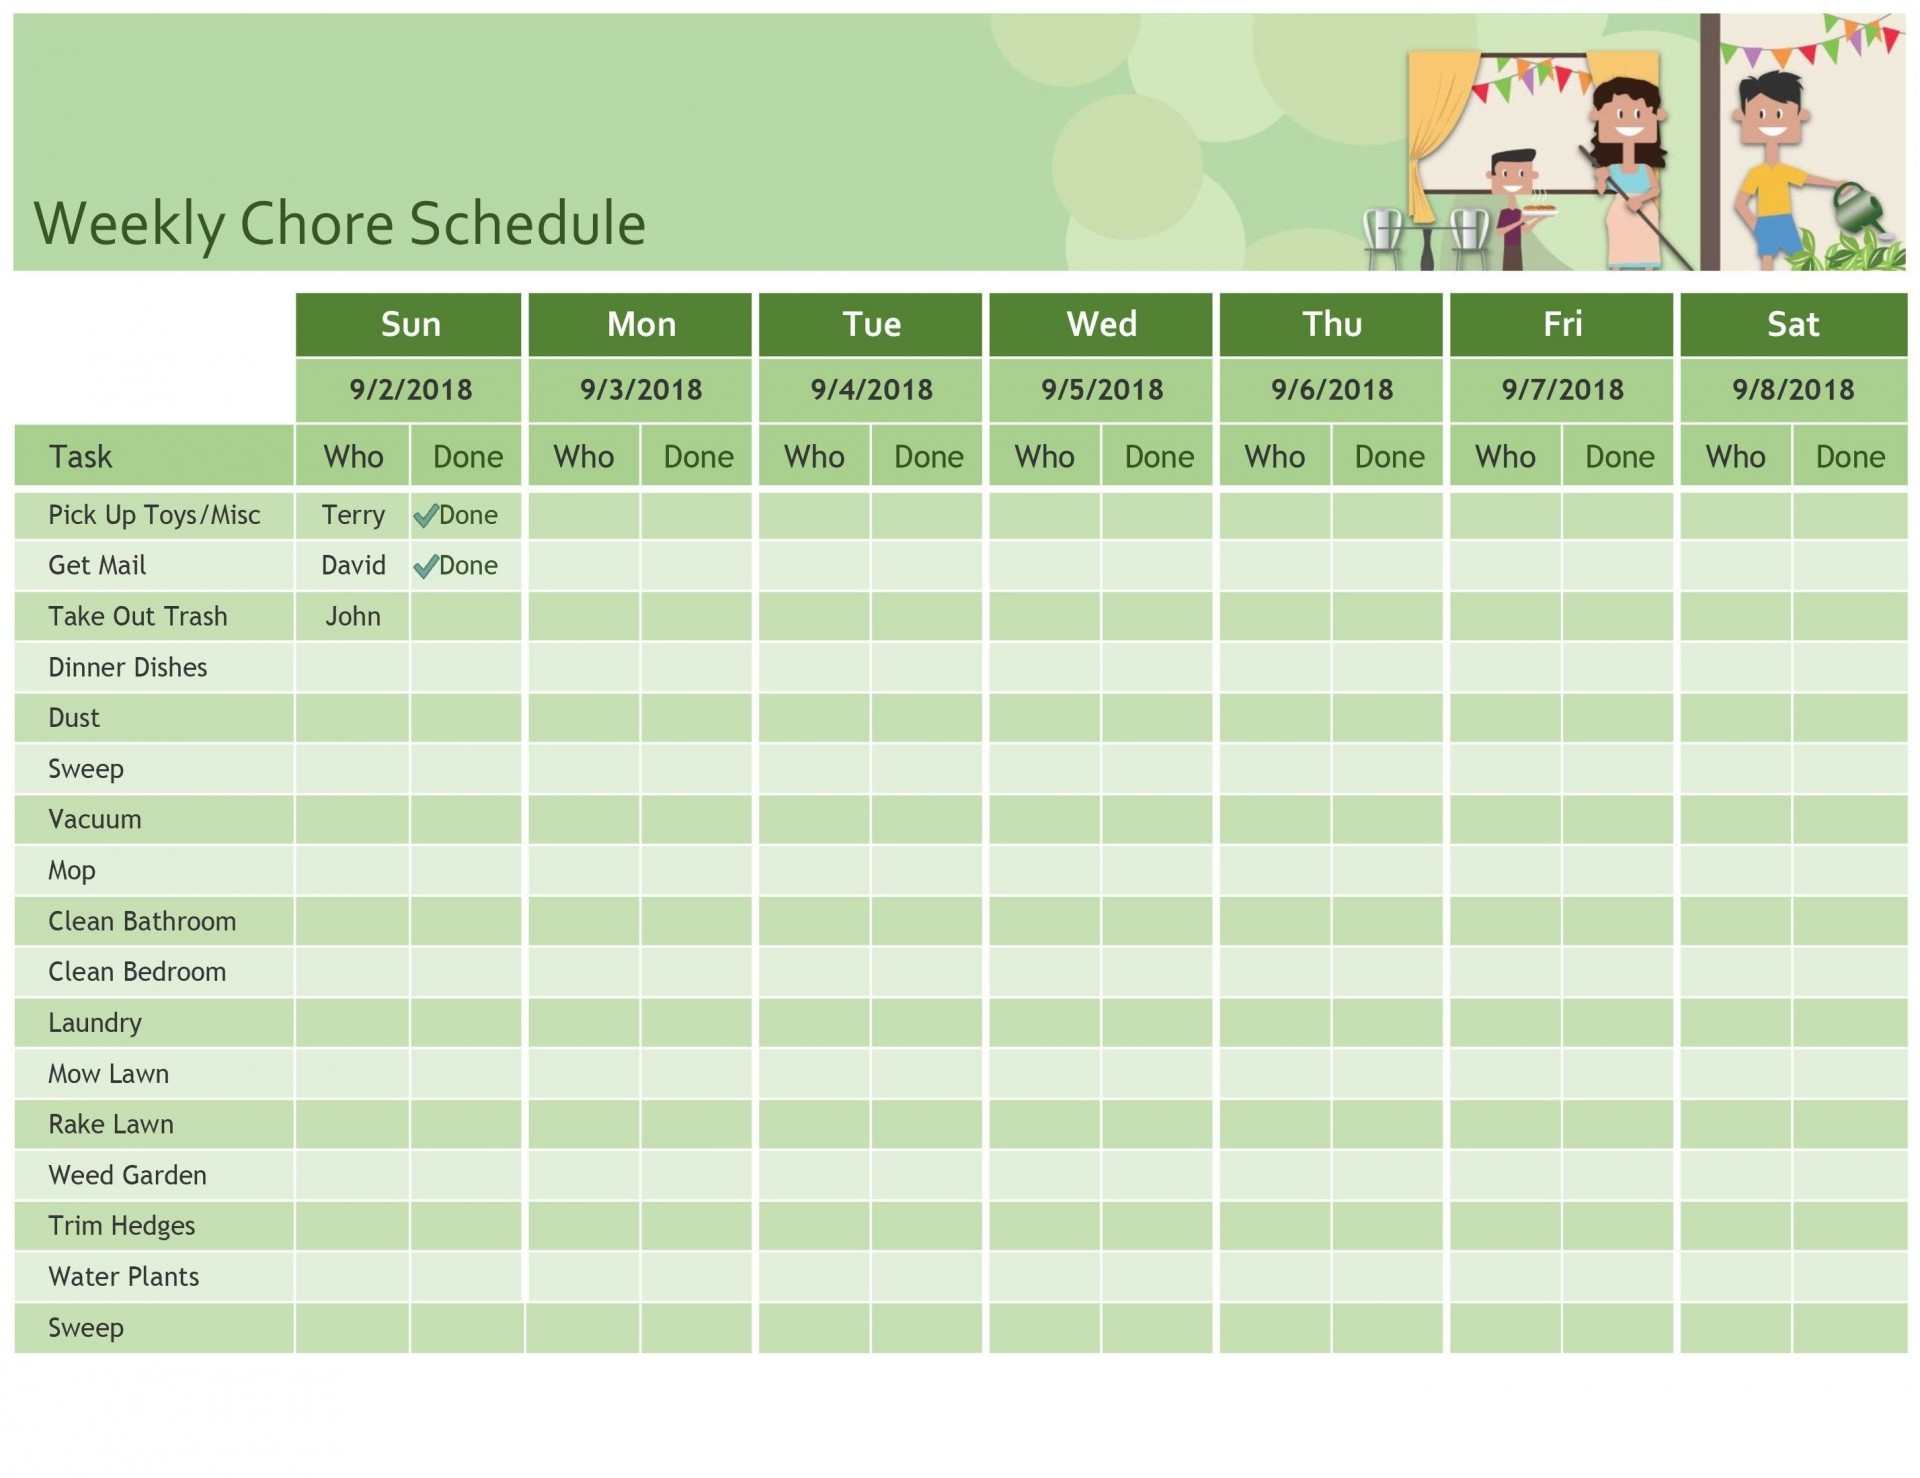 003 Excellent Snack Sign Up Sheet Template Concept  Team Sport Printable1920